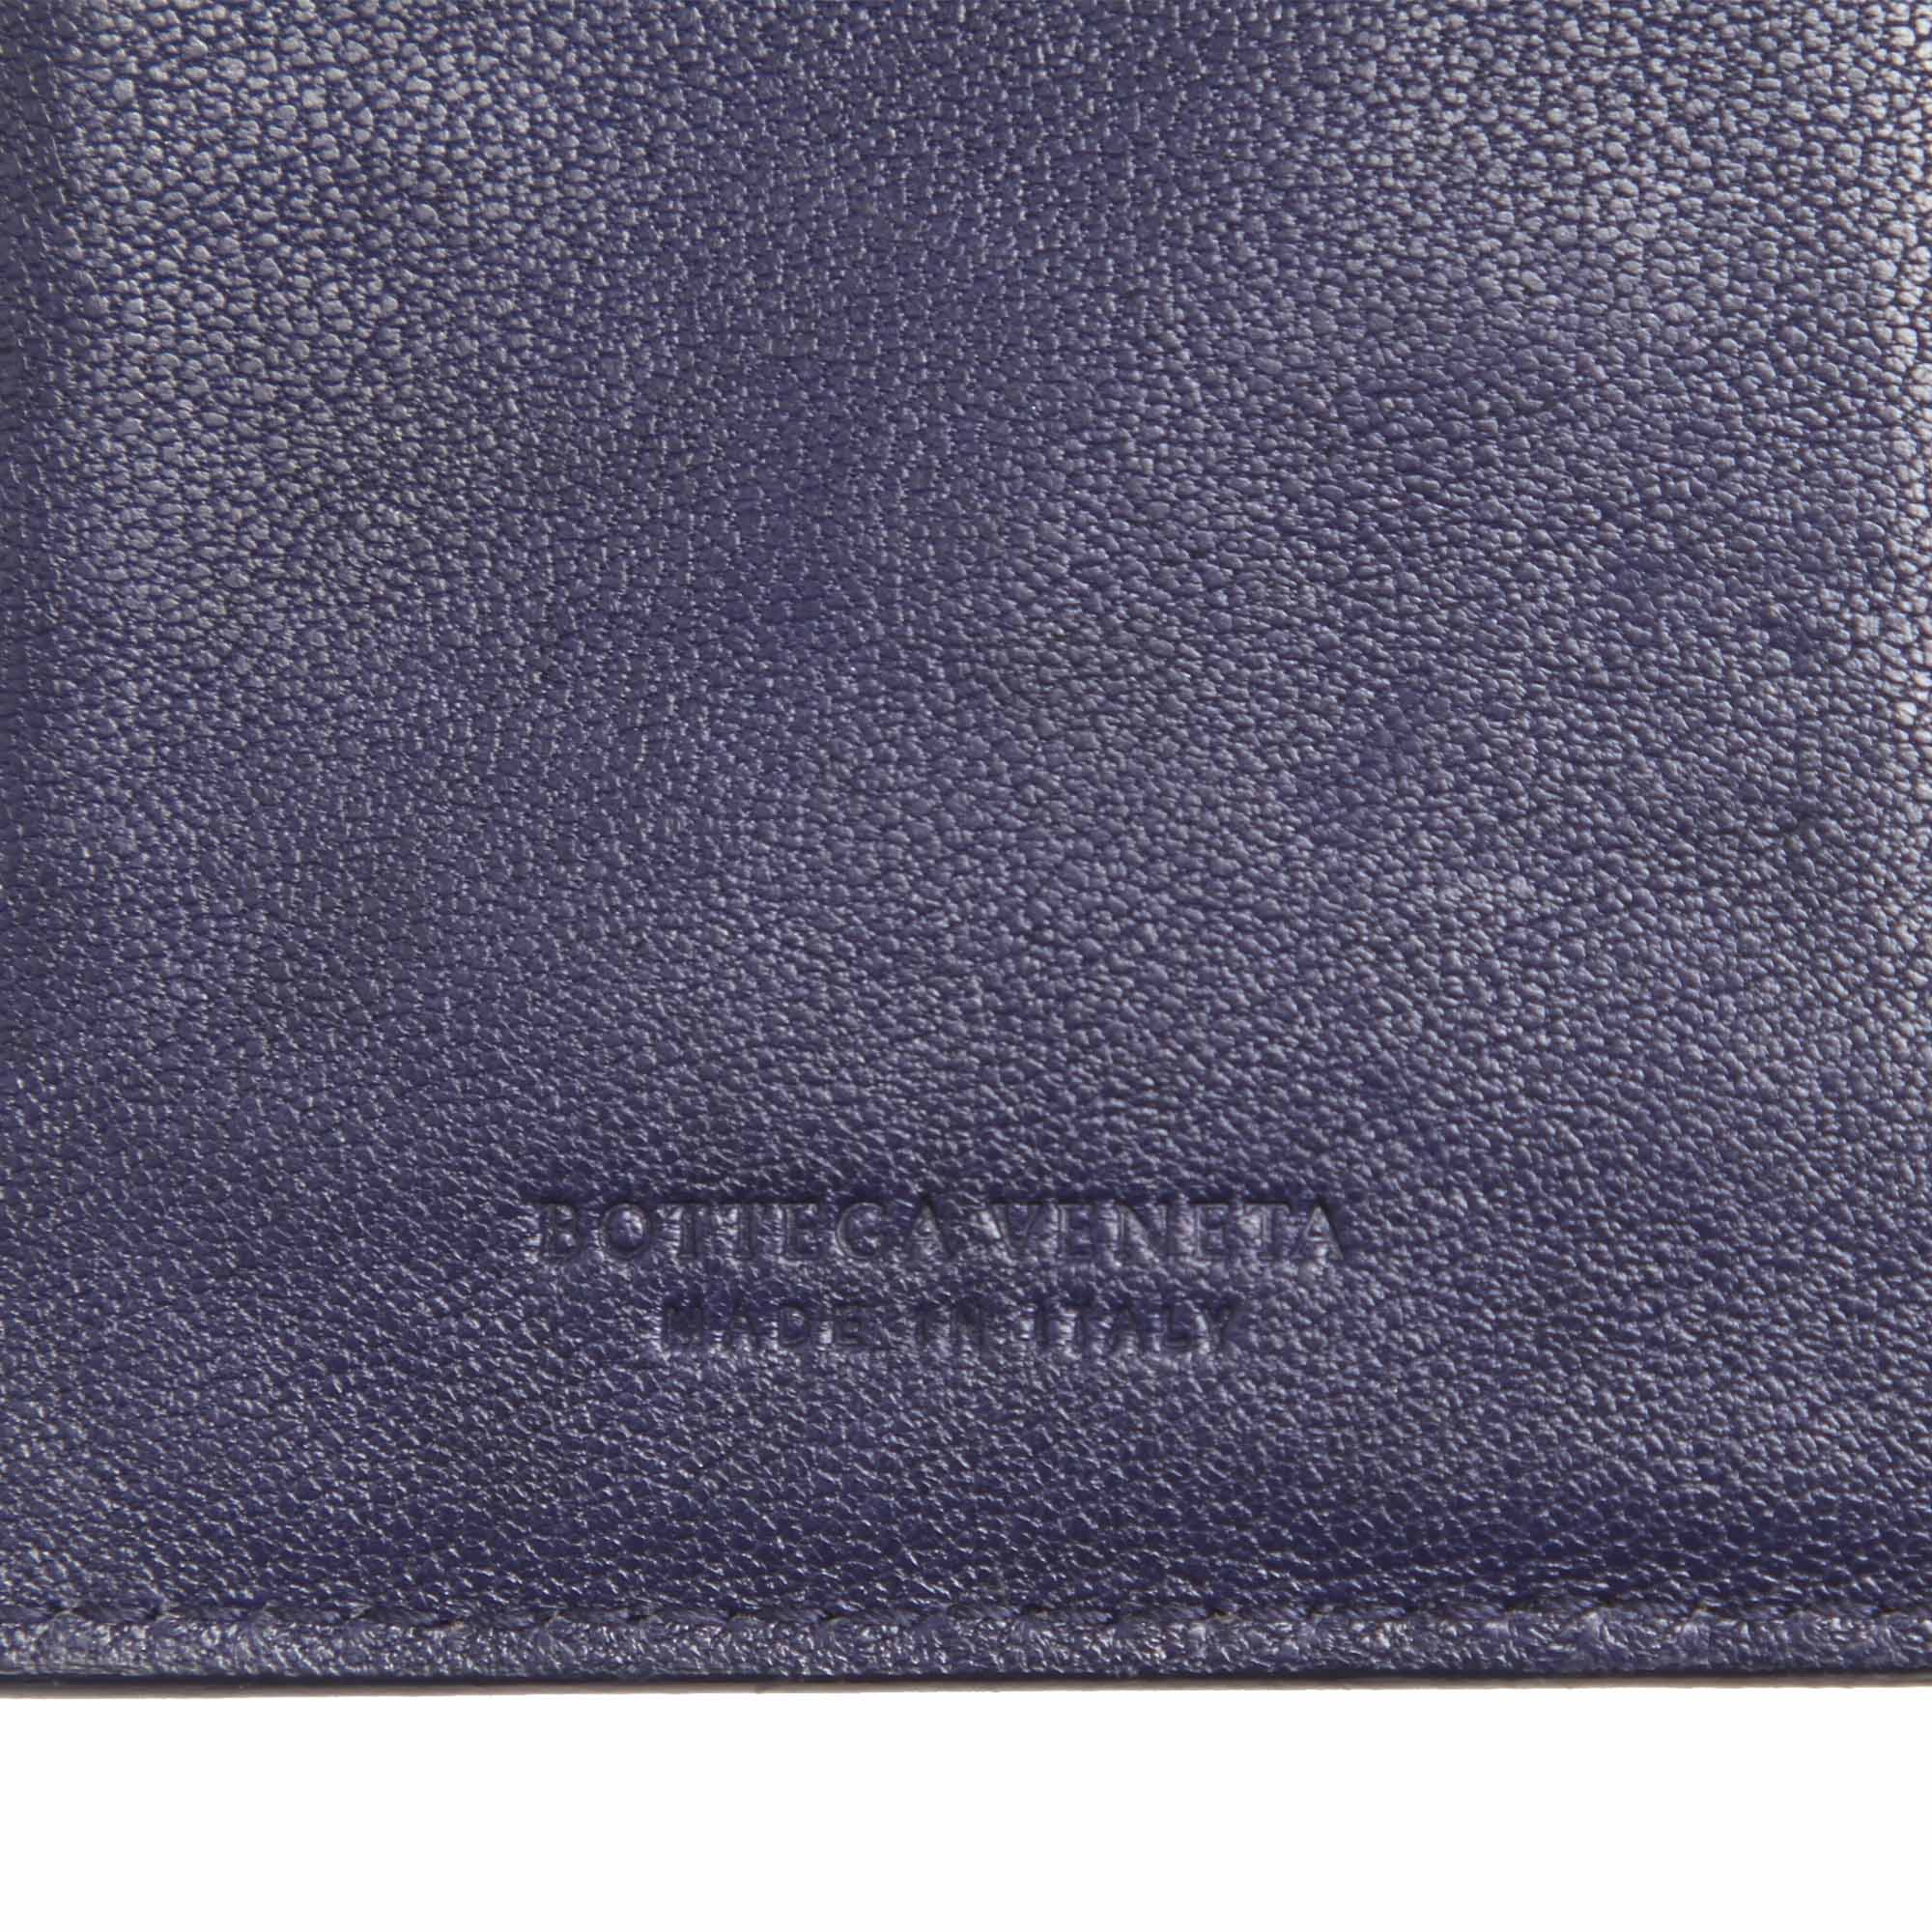 Bottega Veneta Black Intrecciato Leather Bifold Wallet